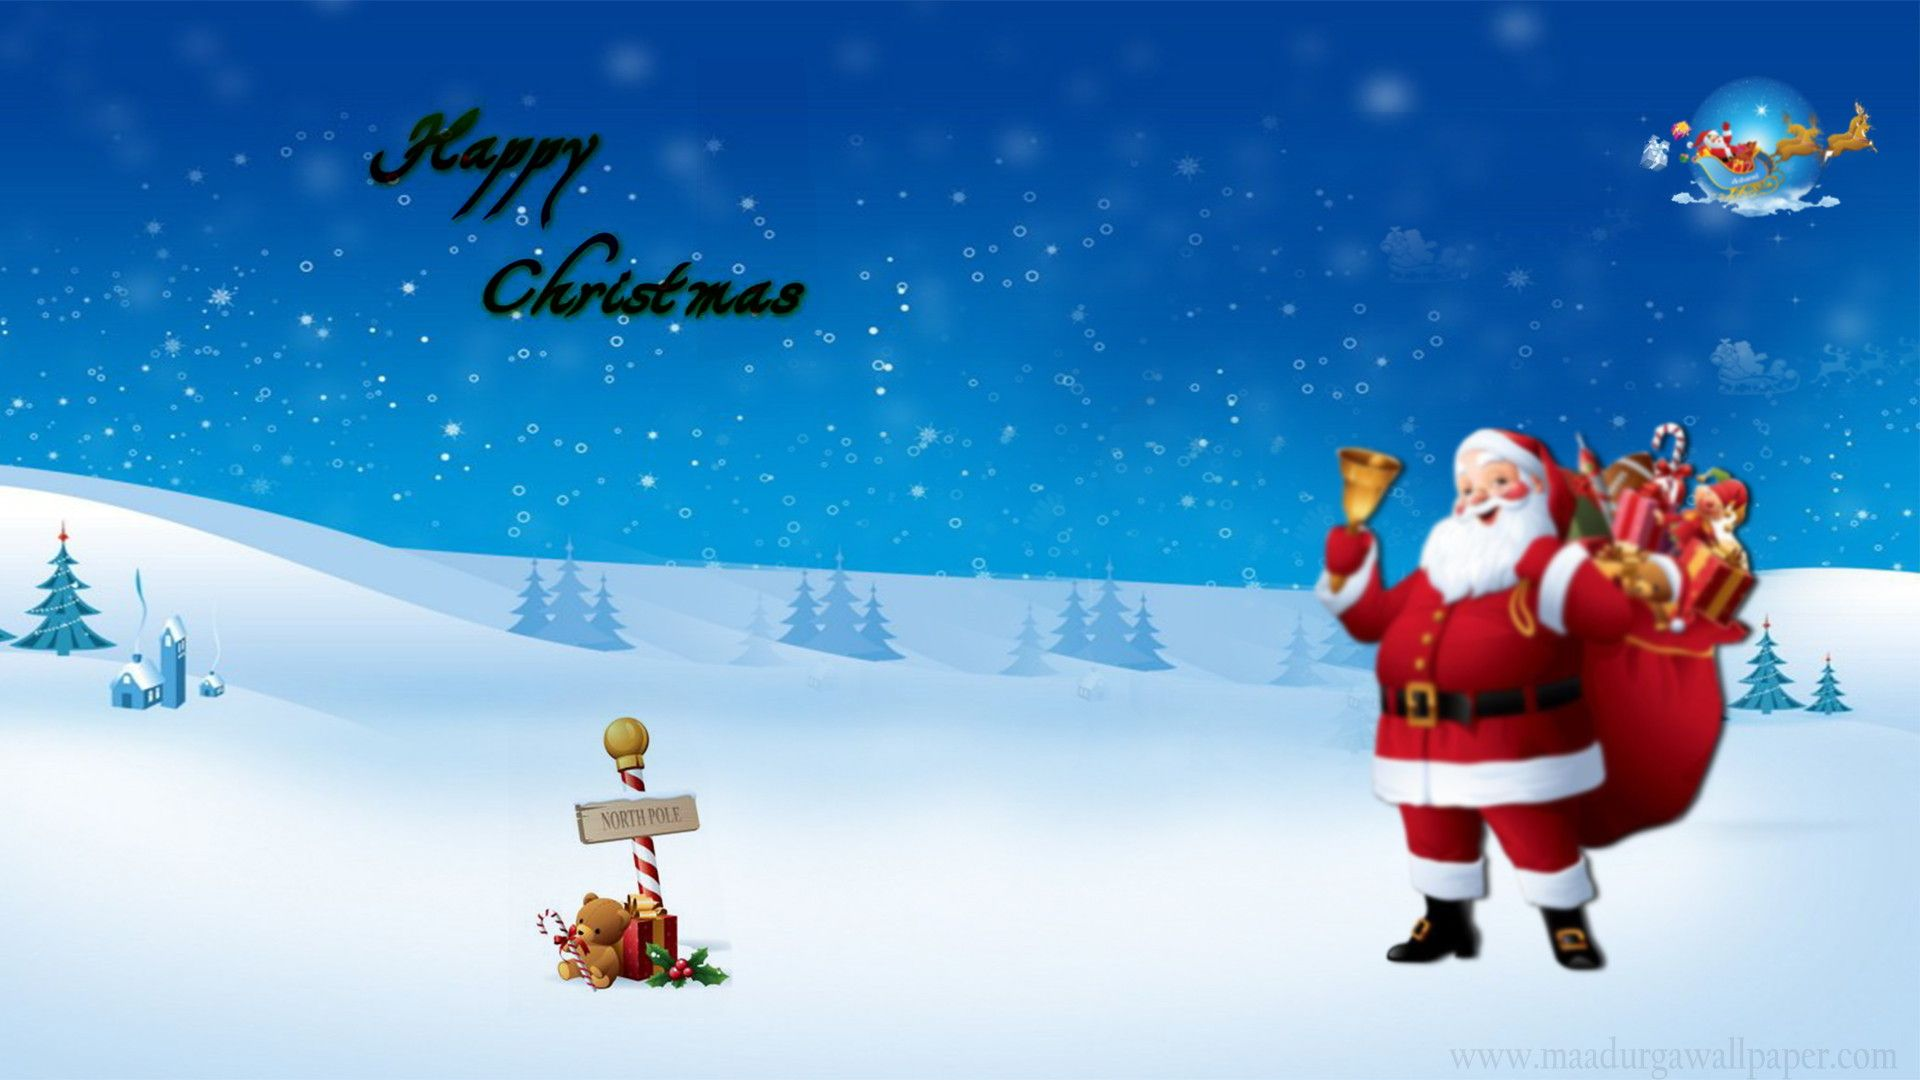 Santa Claus Image, Beautiful Picture & Hd Photo Download